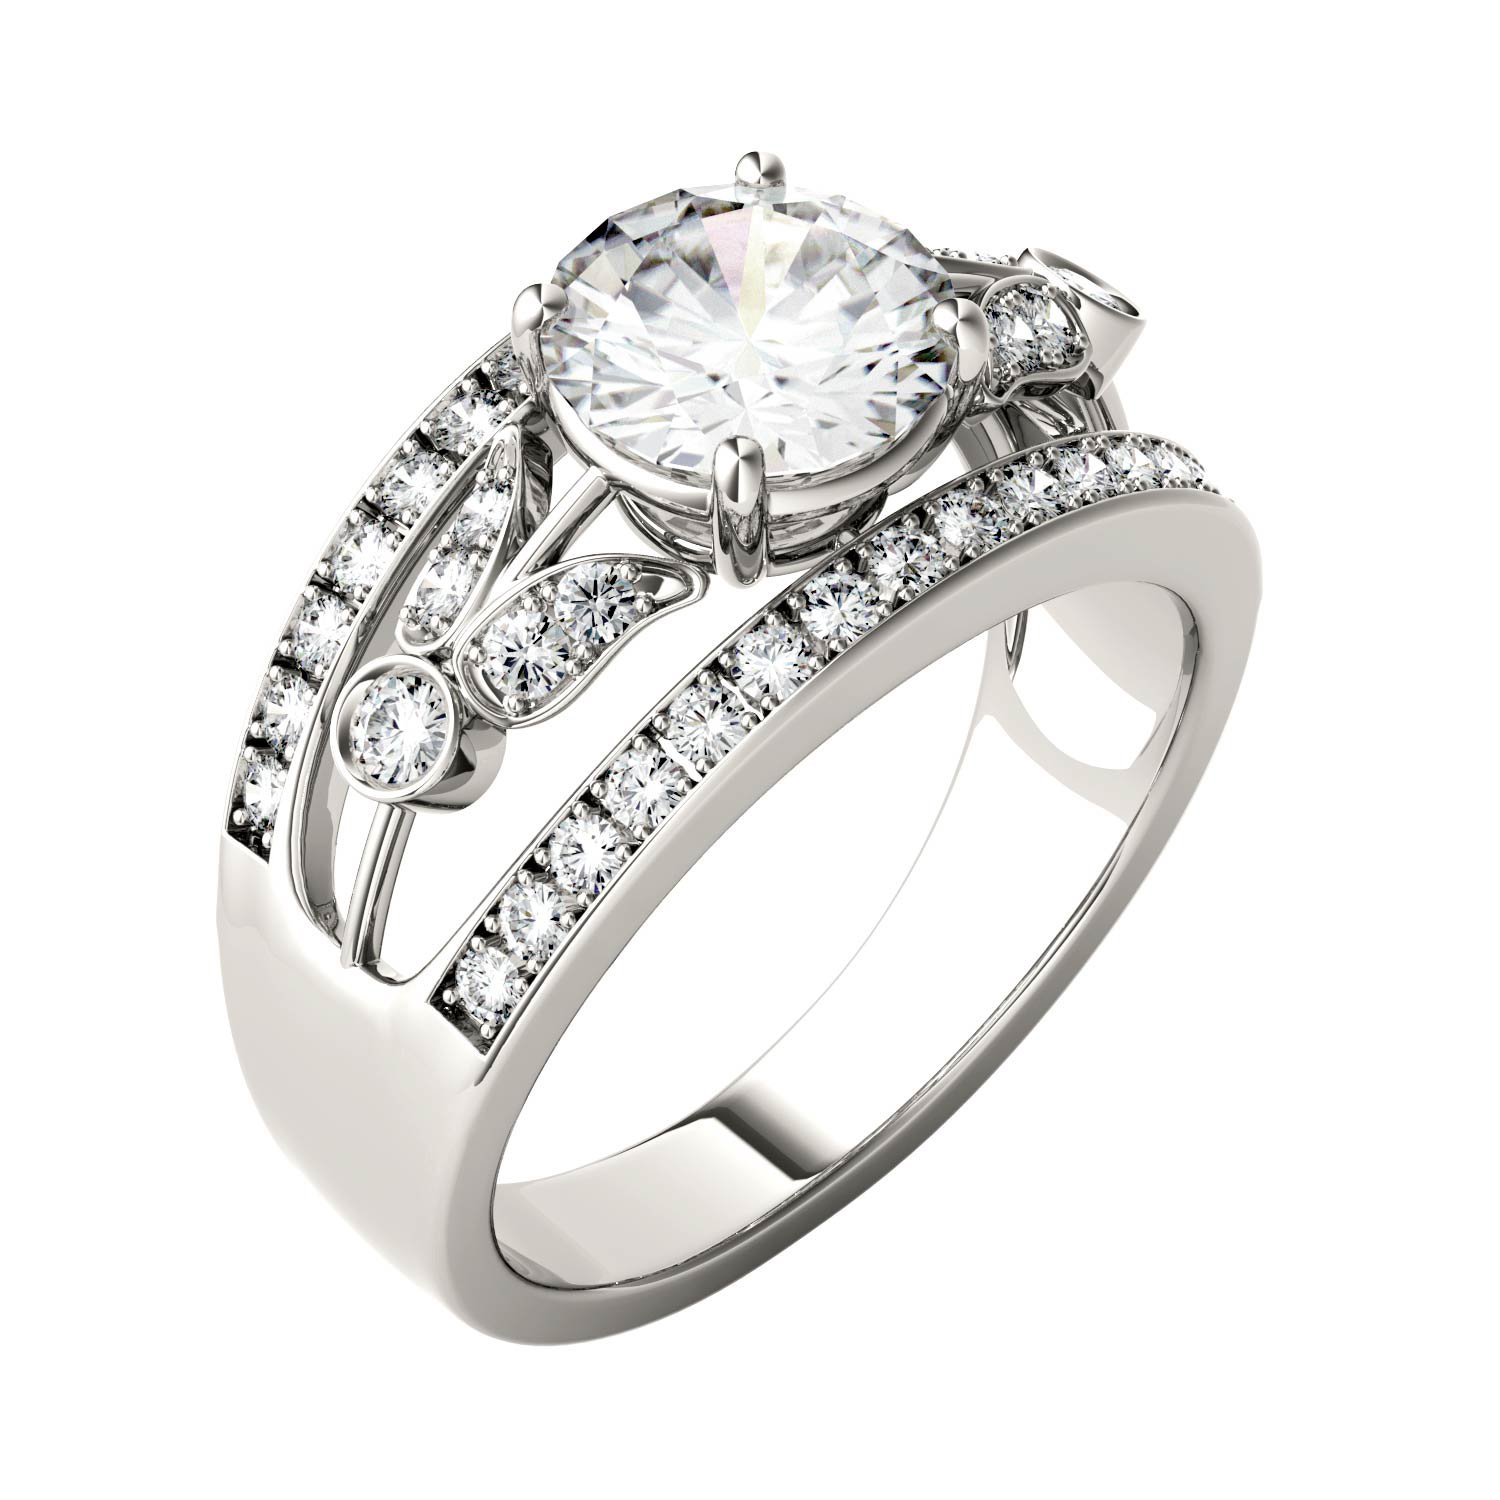 Forever Brilliant Round 7.5mm Moissanite Ring-size 7, 1.91cttw DEW By Charles & Colvard by Charles & Colvard (Image #2)